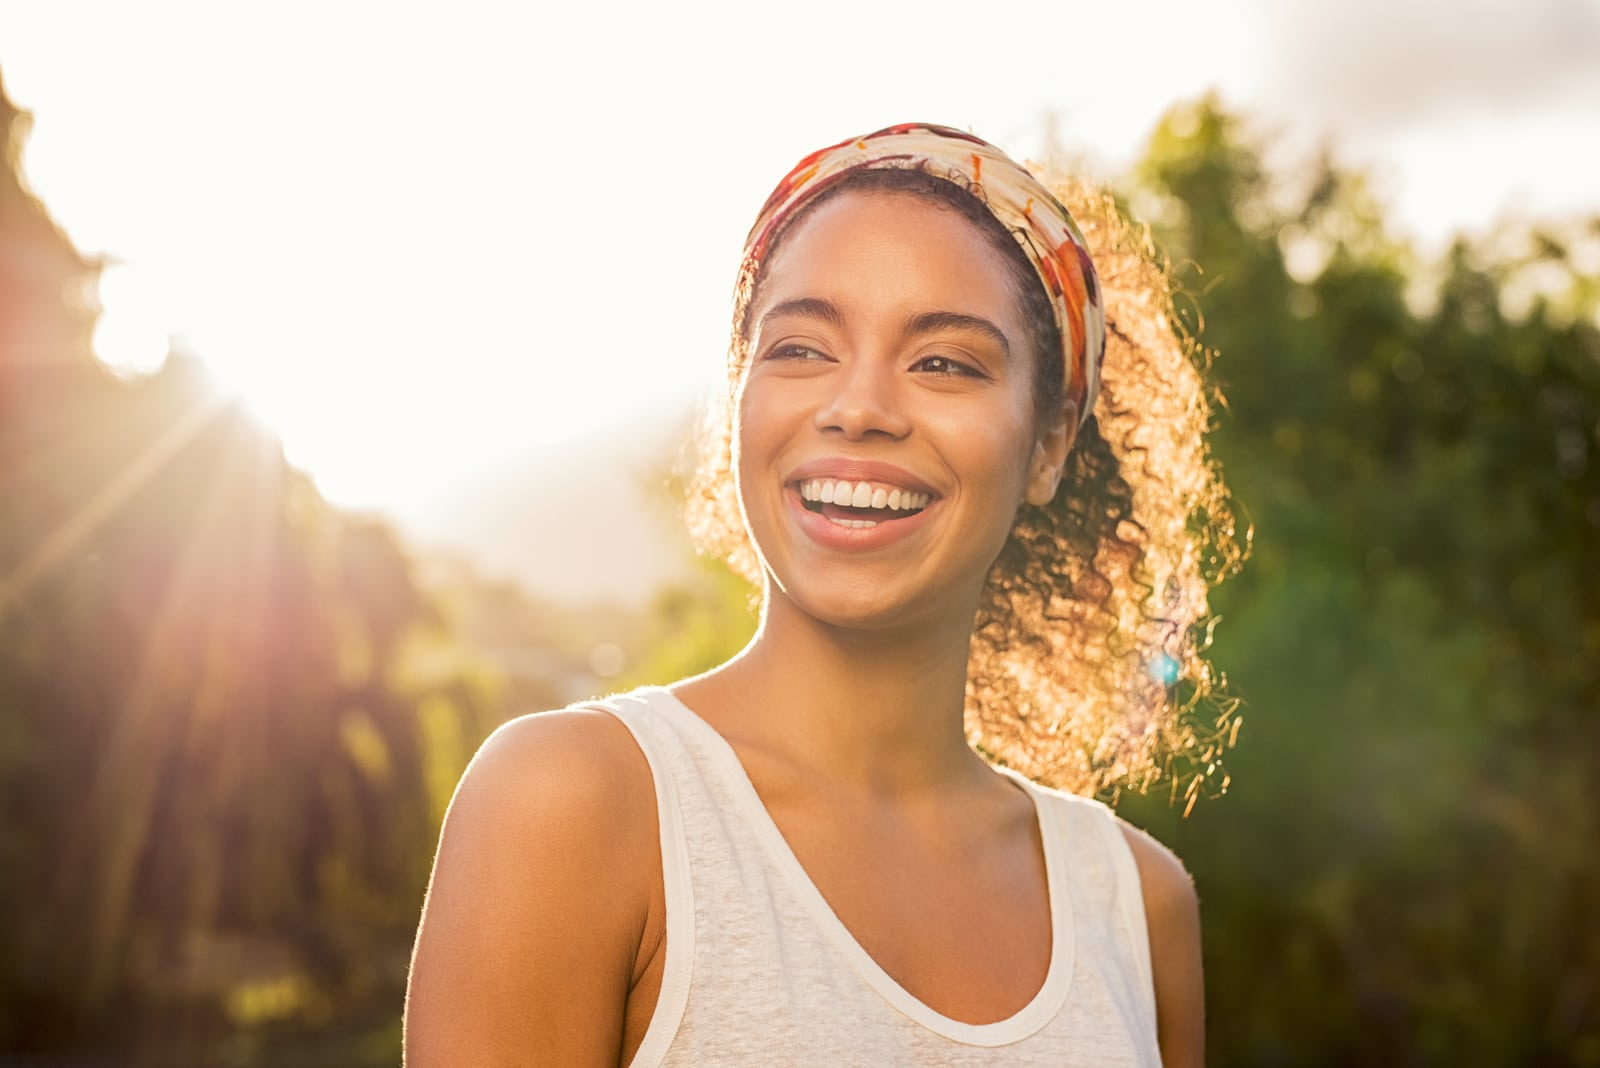 woman smiling and looking away at park during sunset